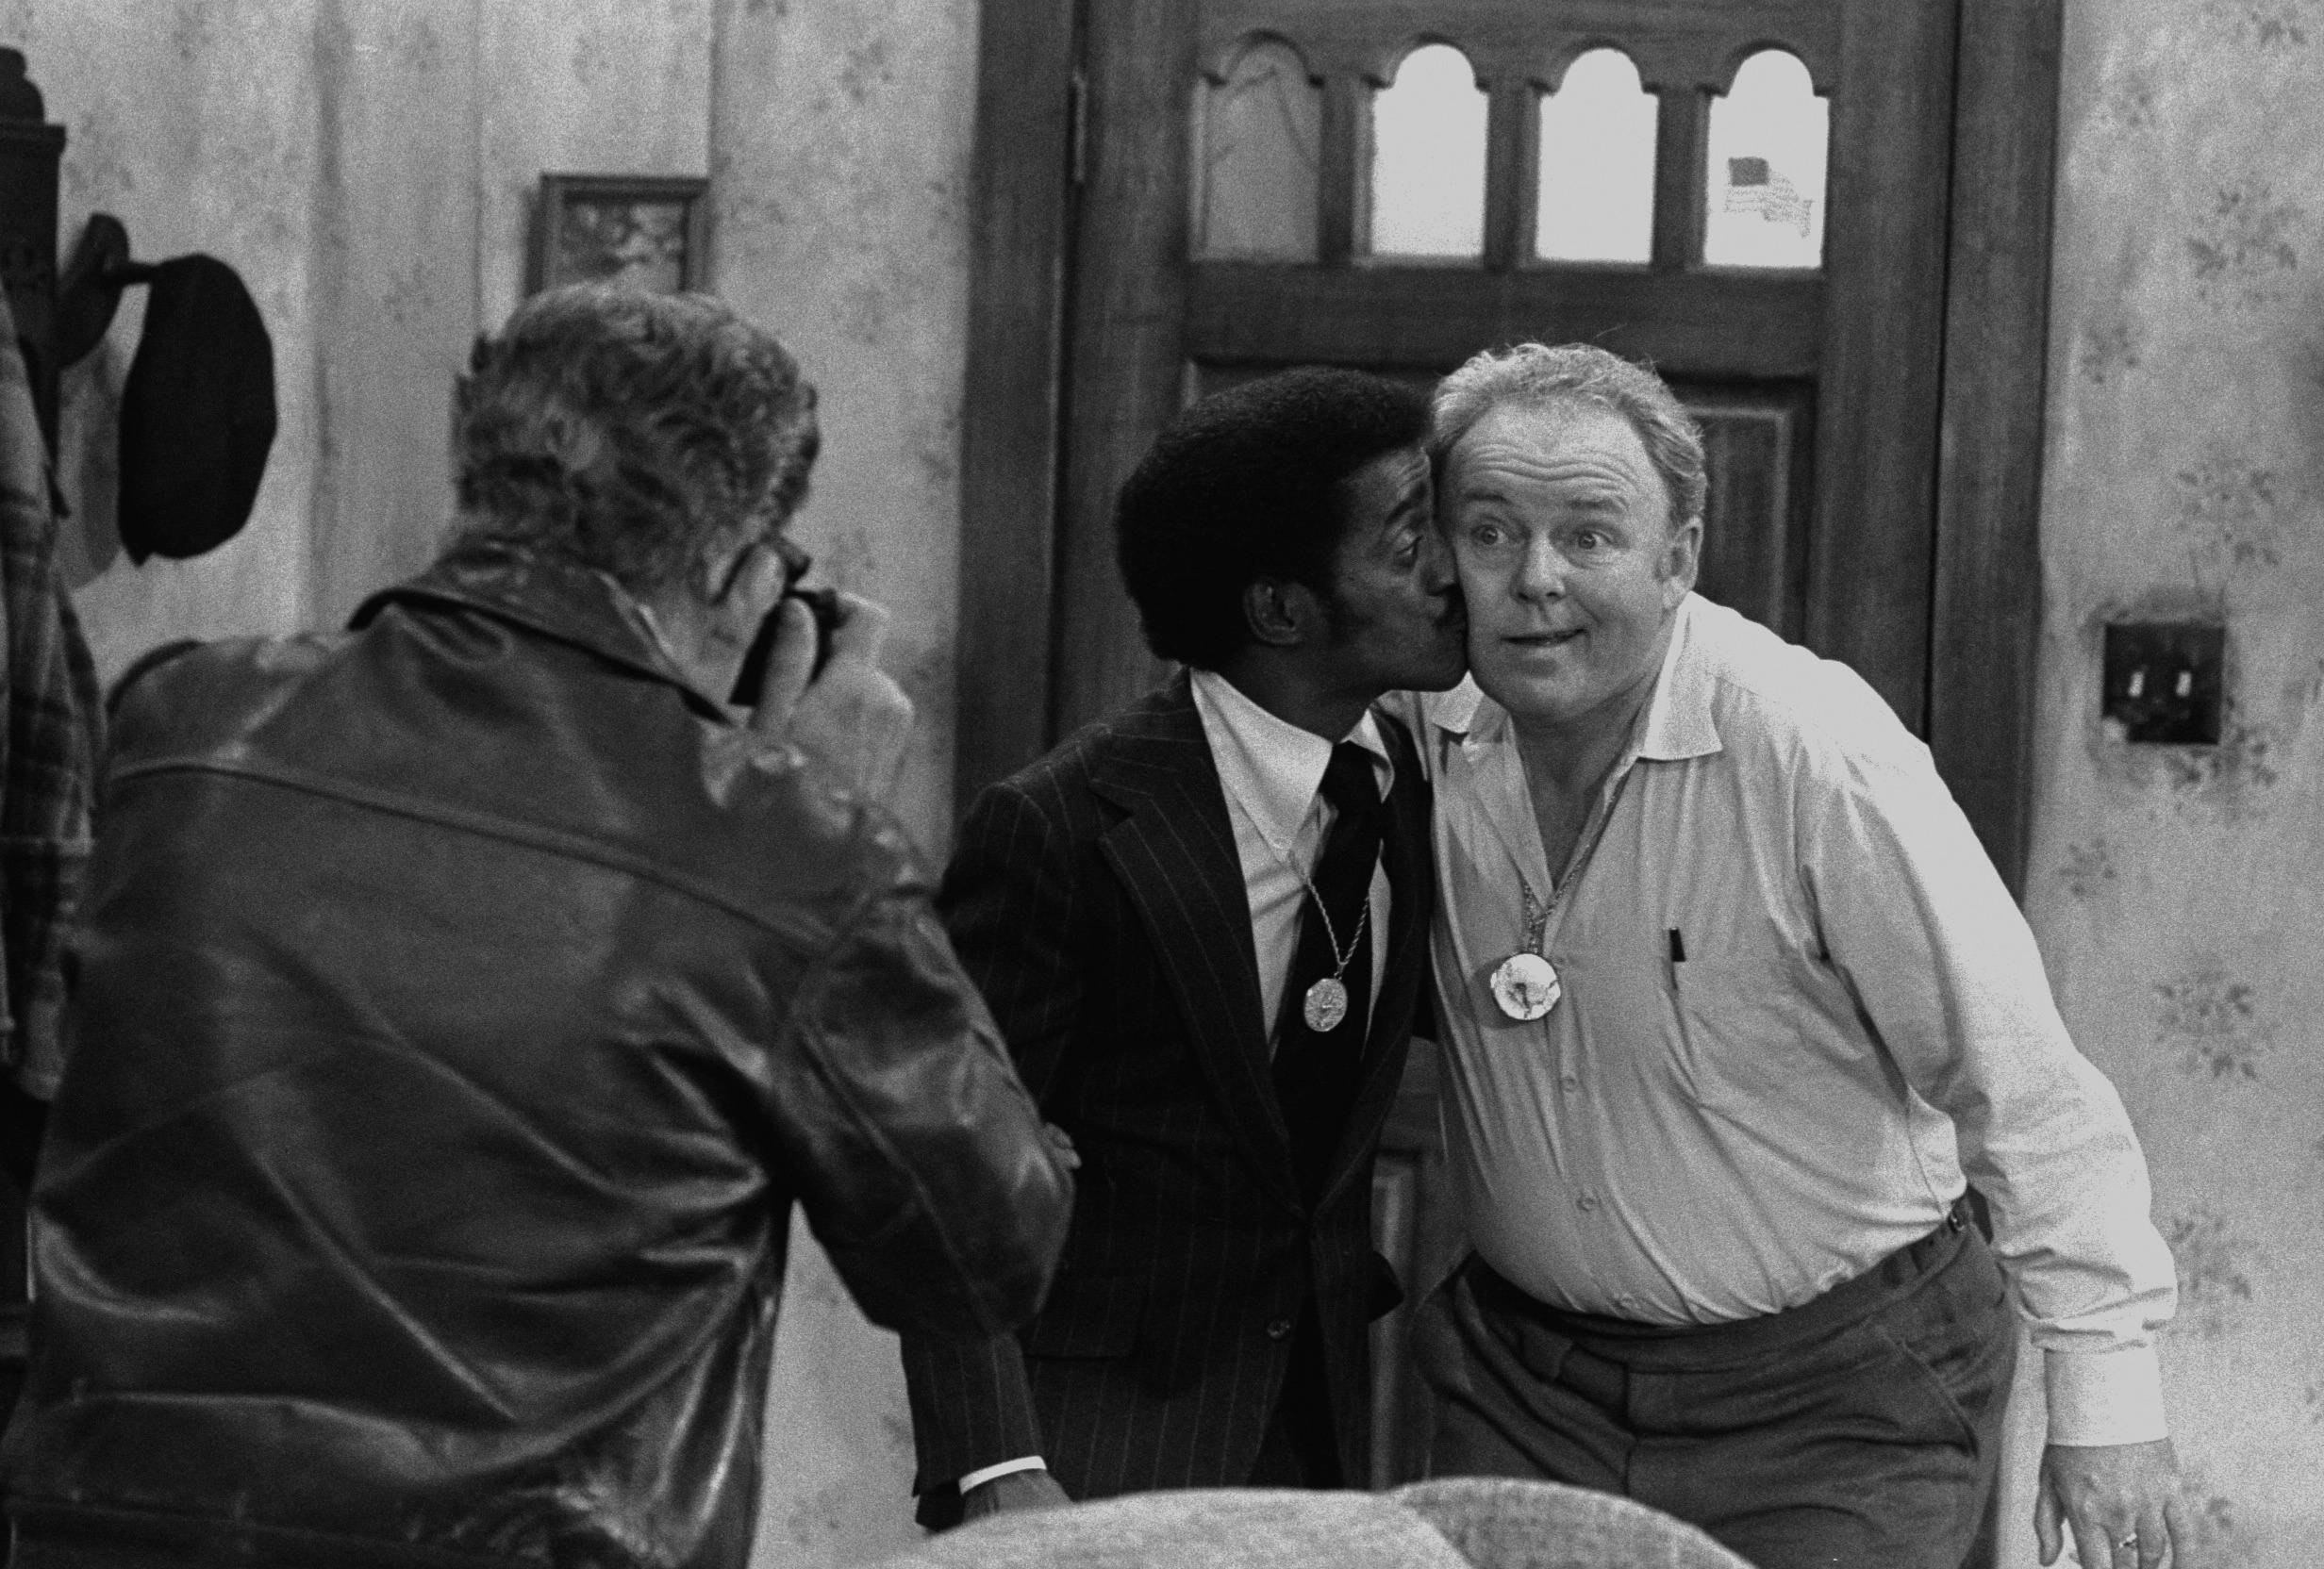 Actor Billy Halop (with camera), entertainer Sammy Davis Jr., and actor Carroll O'Connor in a scene from 'All in the Family'